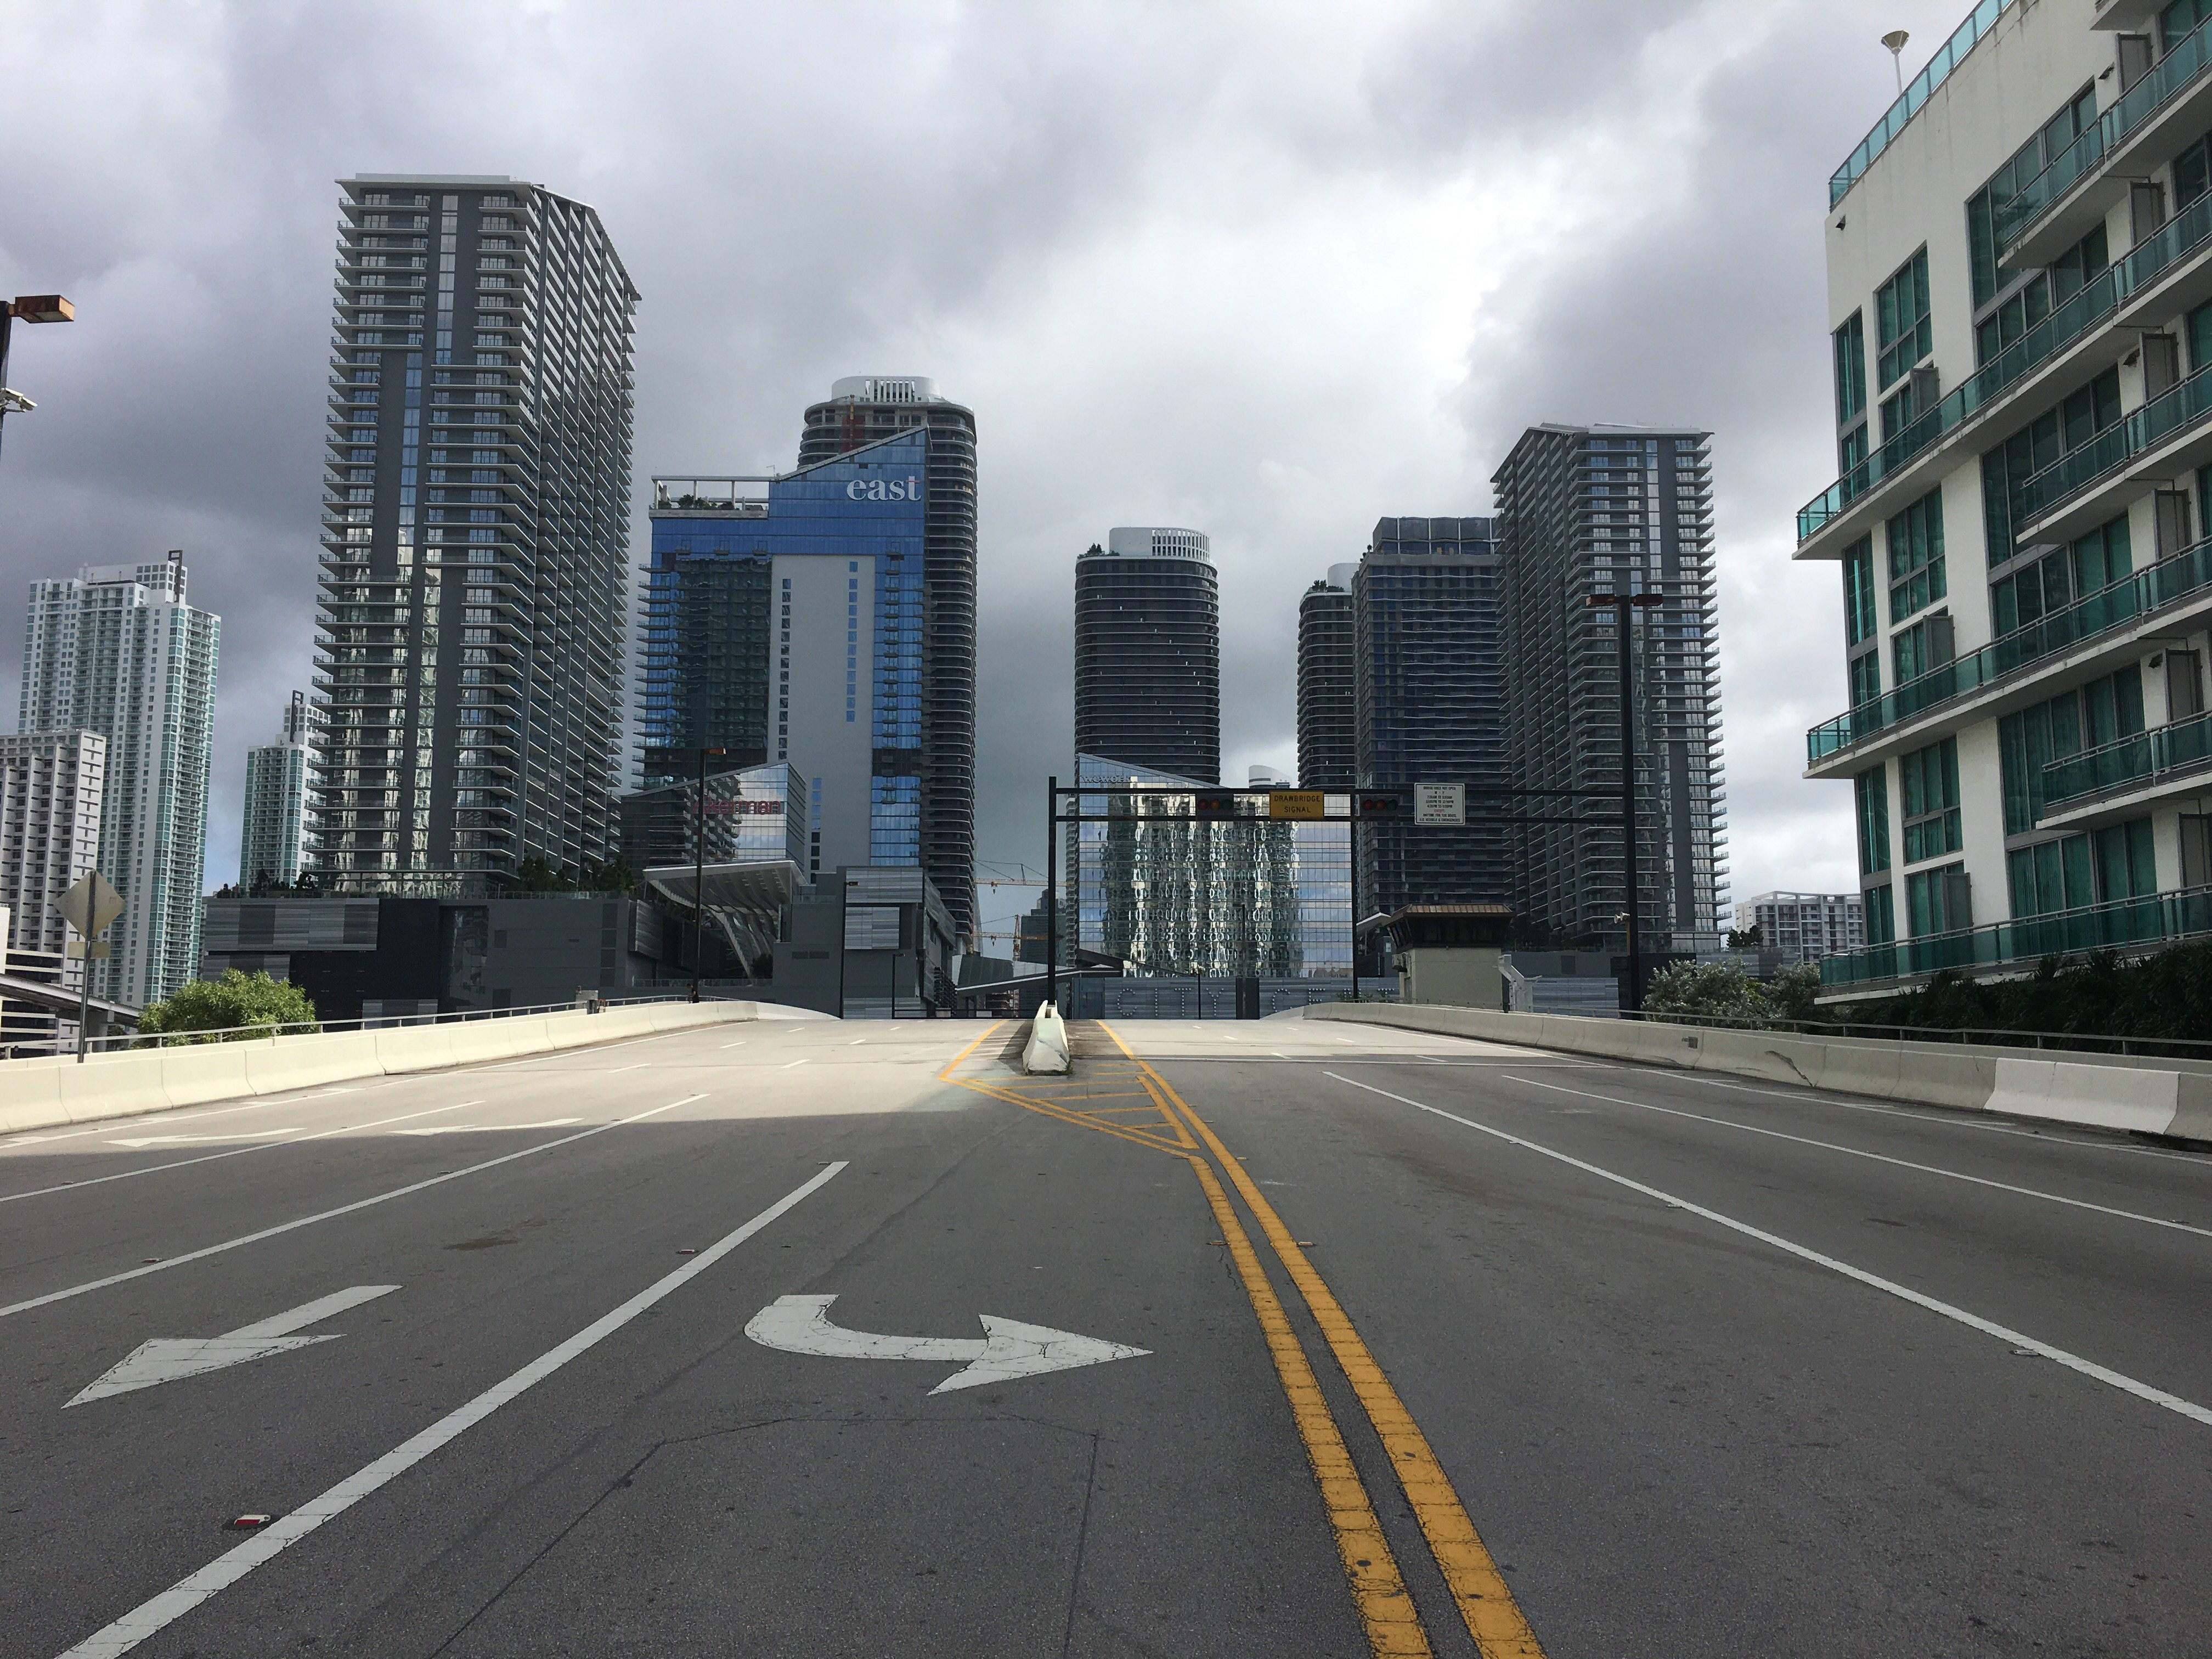 Miami has become a ghost town just one day before Hurricane Irma is set to